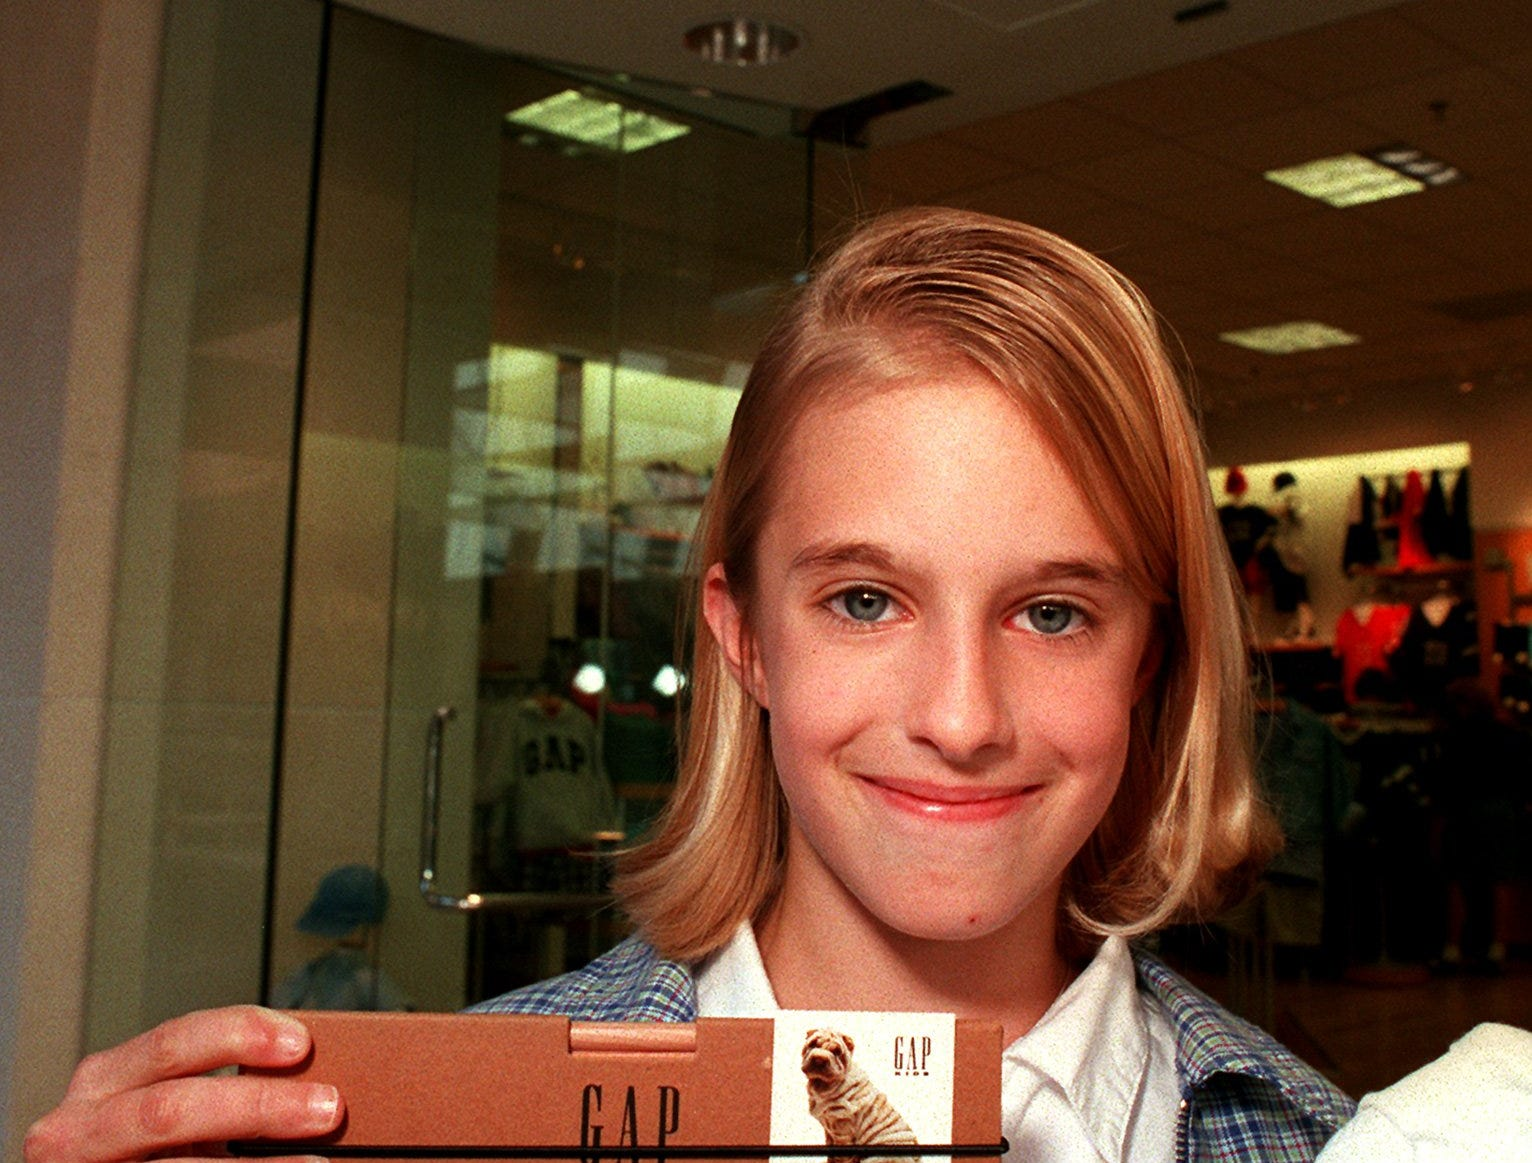 Ainslee Ericson, 11, holds a box of pencils and t-shirt after interviewing GapKids executive vice-president Ron Franks at the GapKids store at Valley West Mall. Ainslee, a 5th grader at Hanawalt, was conducting the interview for a school project on May 30, 1996.